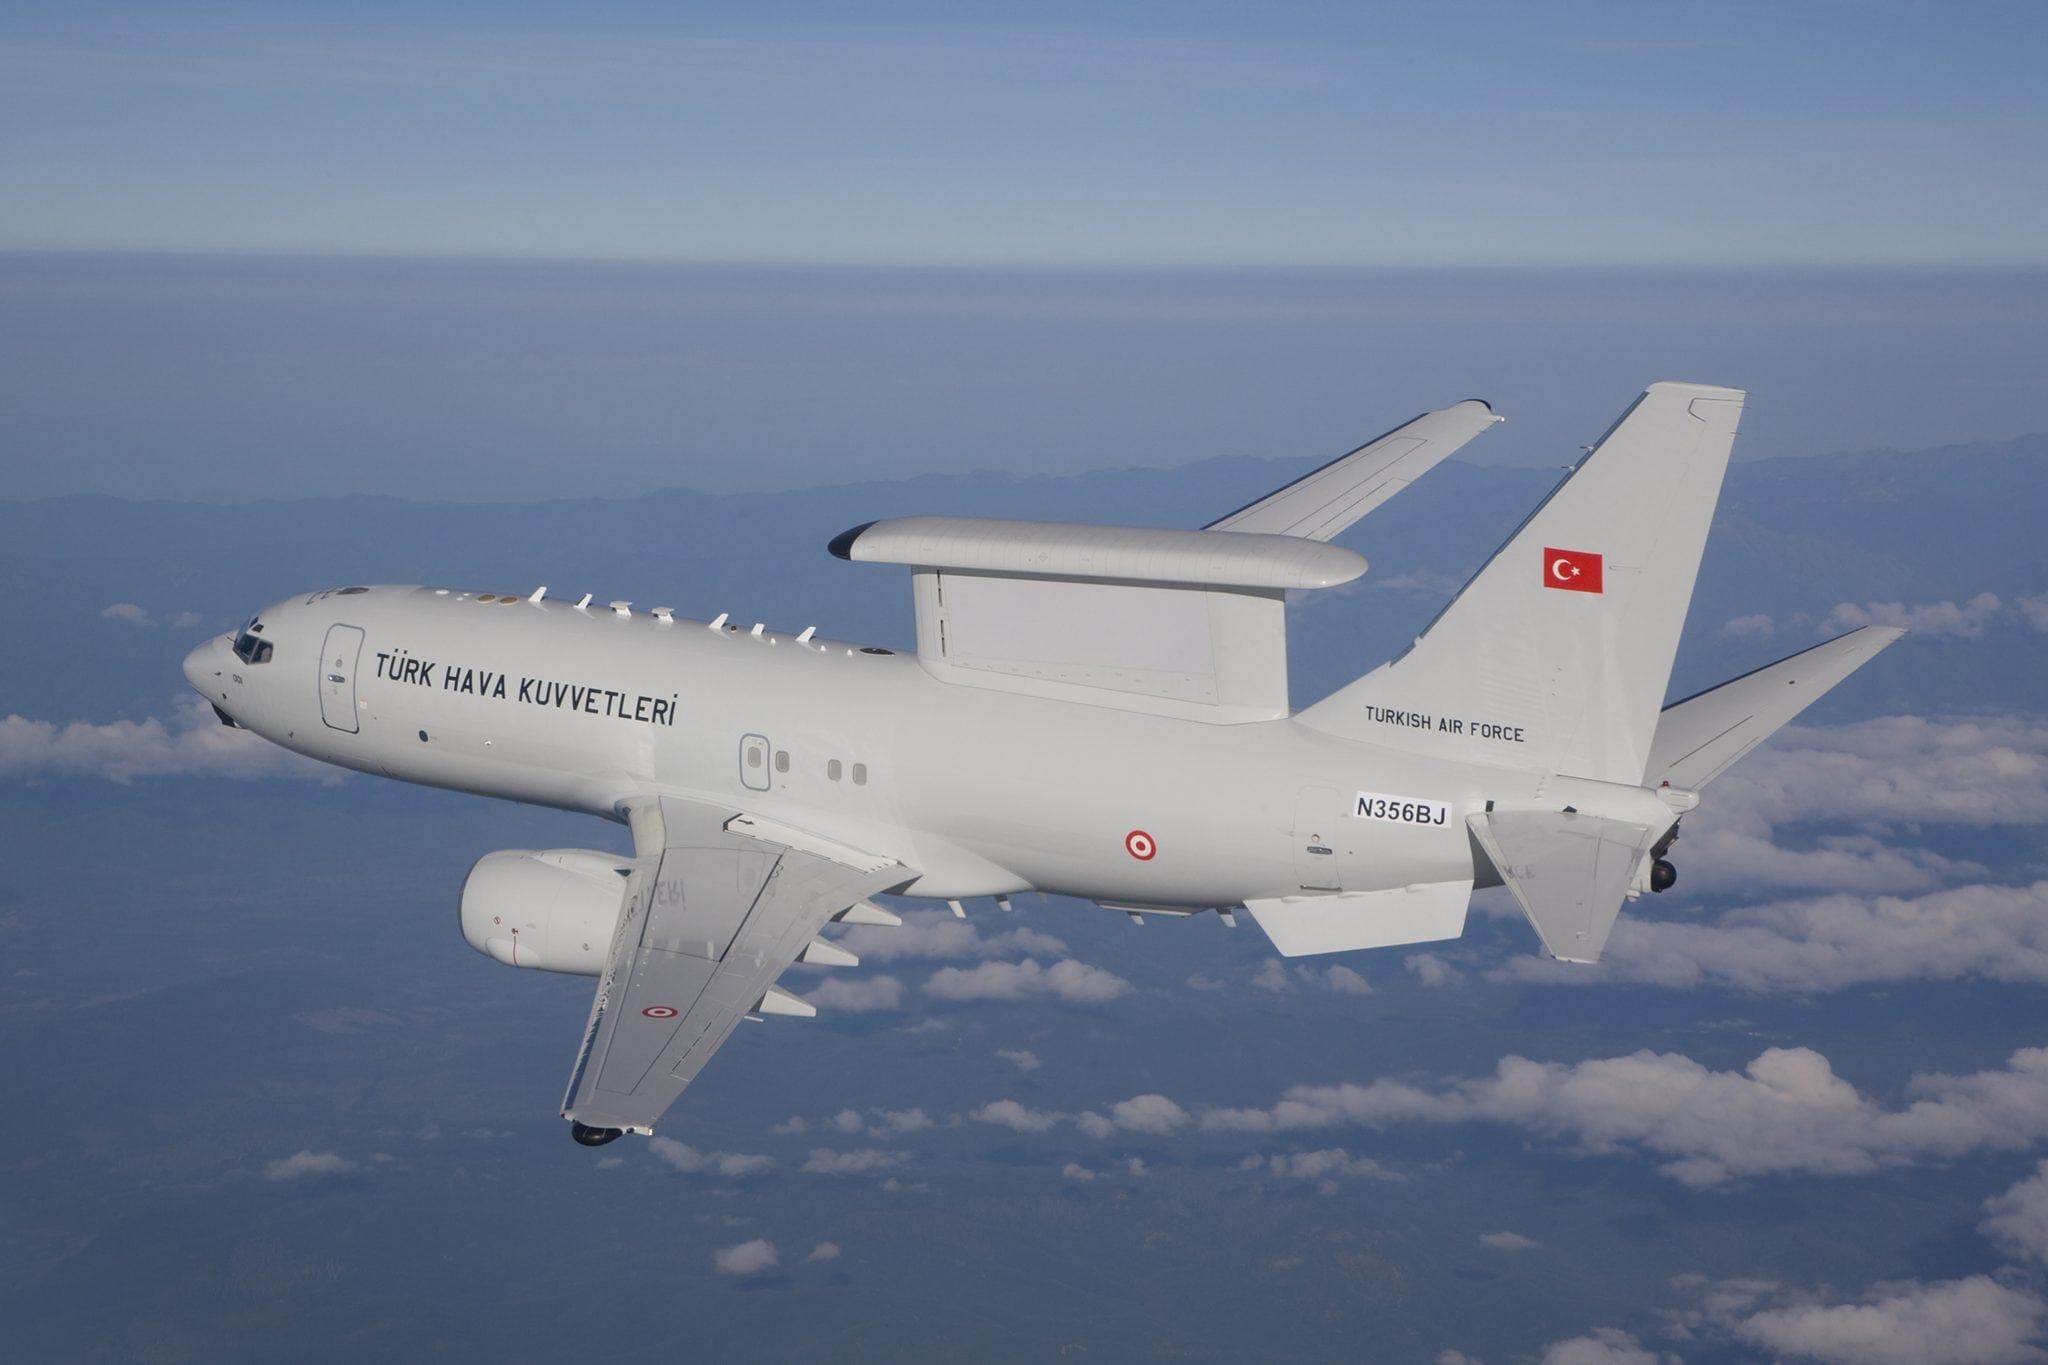 Boeing delivered the fourth and final Airborne Early Warning & Control Peace Eagle to Turkey